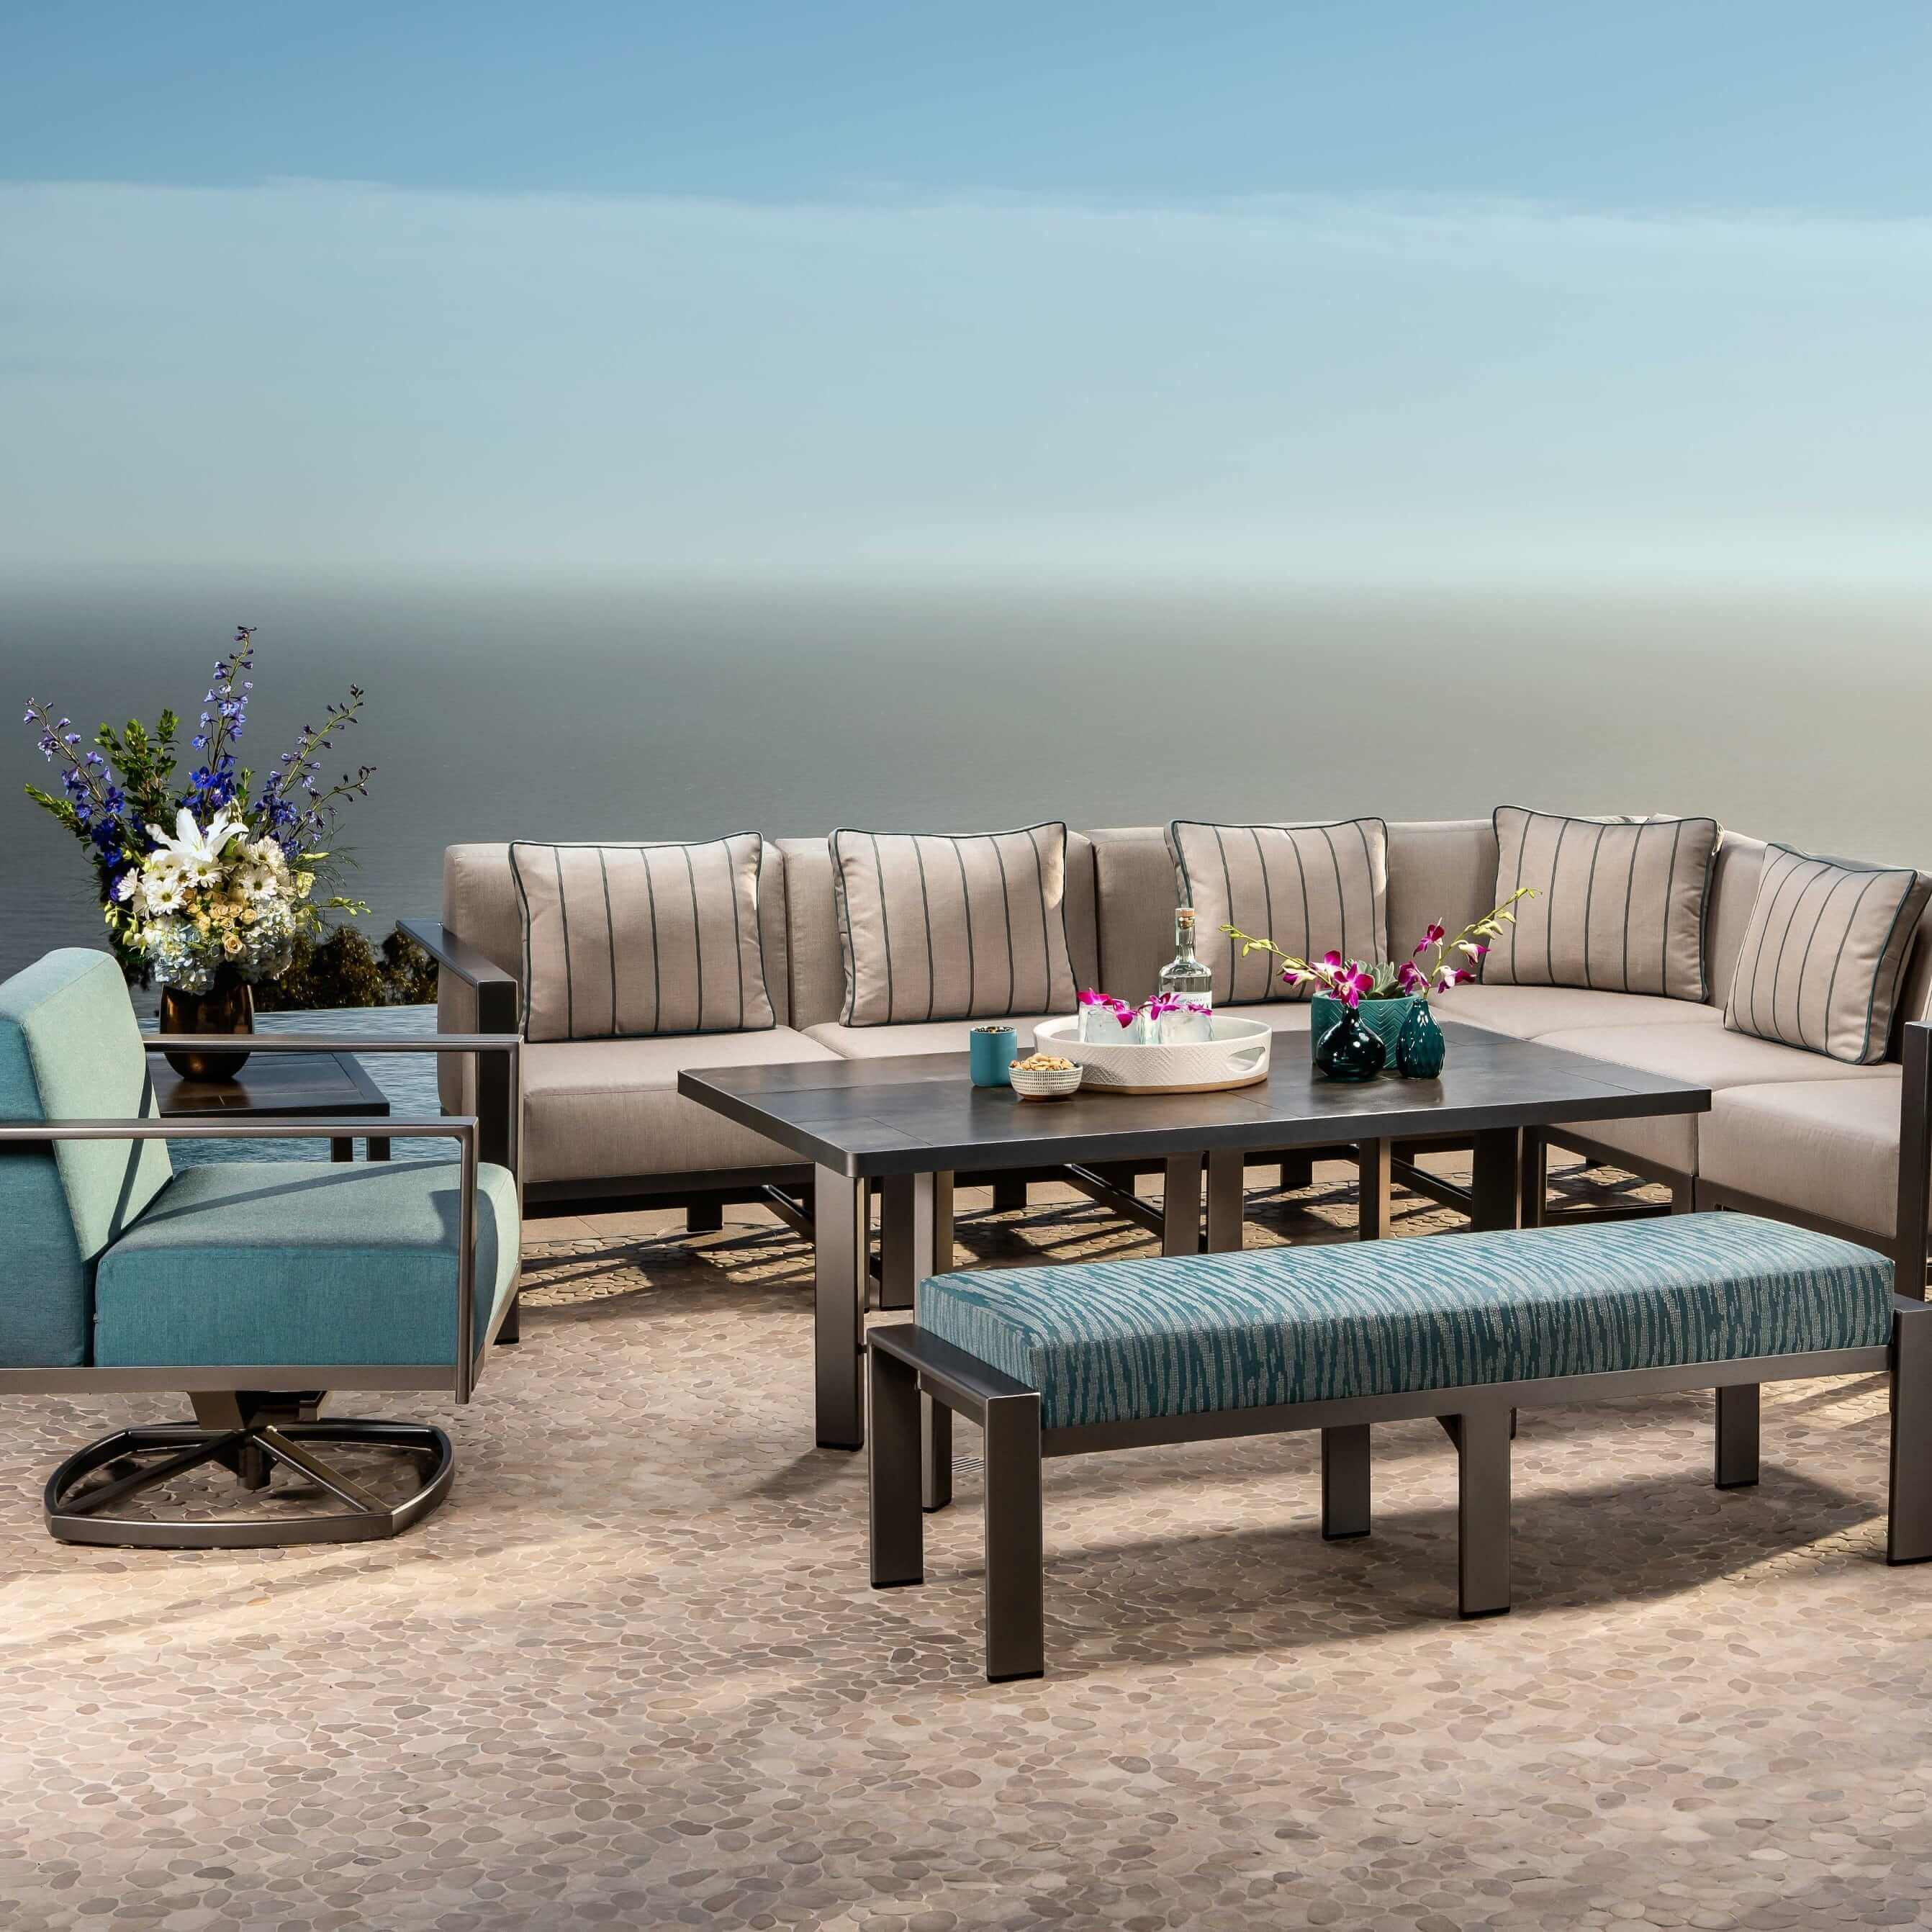 OW Lee - Sunnyland Outdoor Patio Furniture Dallas Fort ...